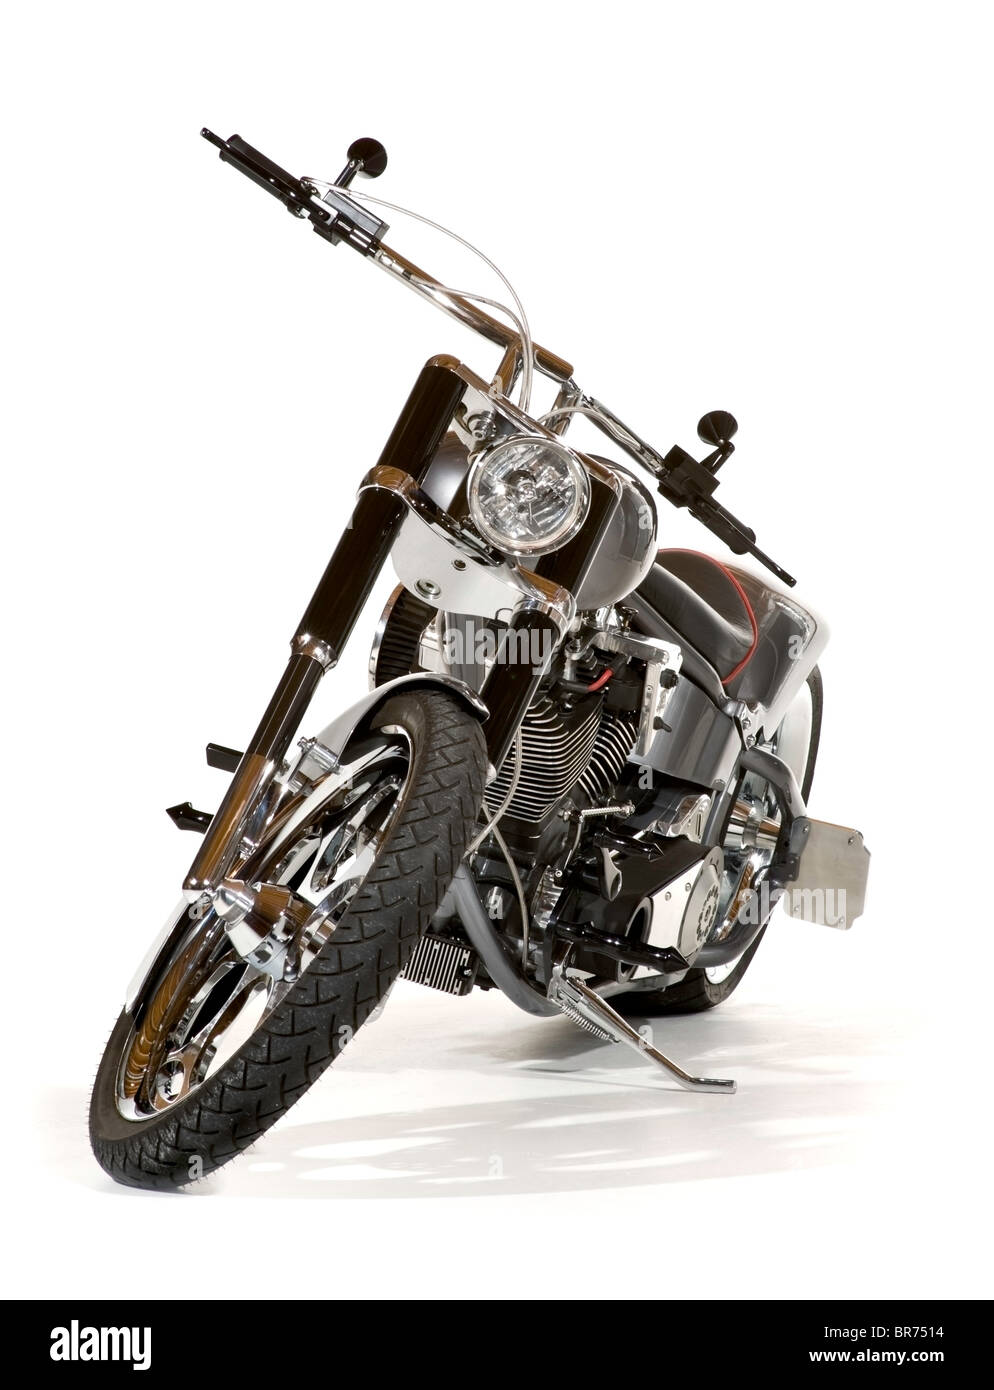 High end custom chopper motorcycle, seen from the front with handlebar and wheel turned toward the viewer. Isolated. - Stock Image